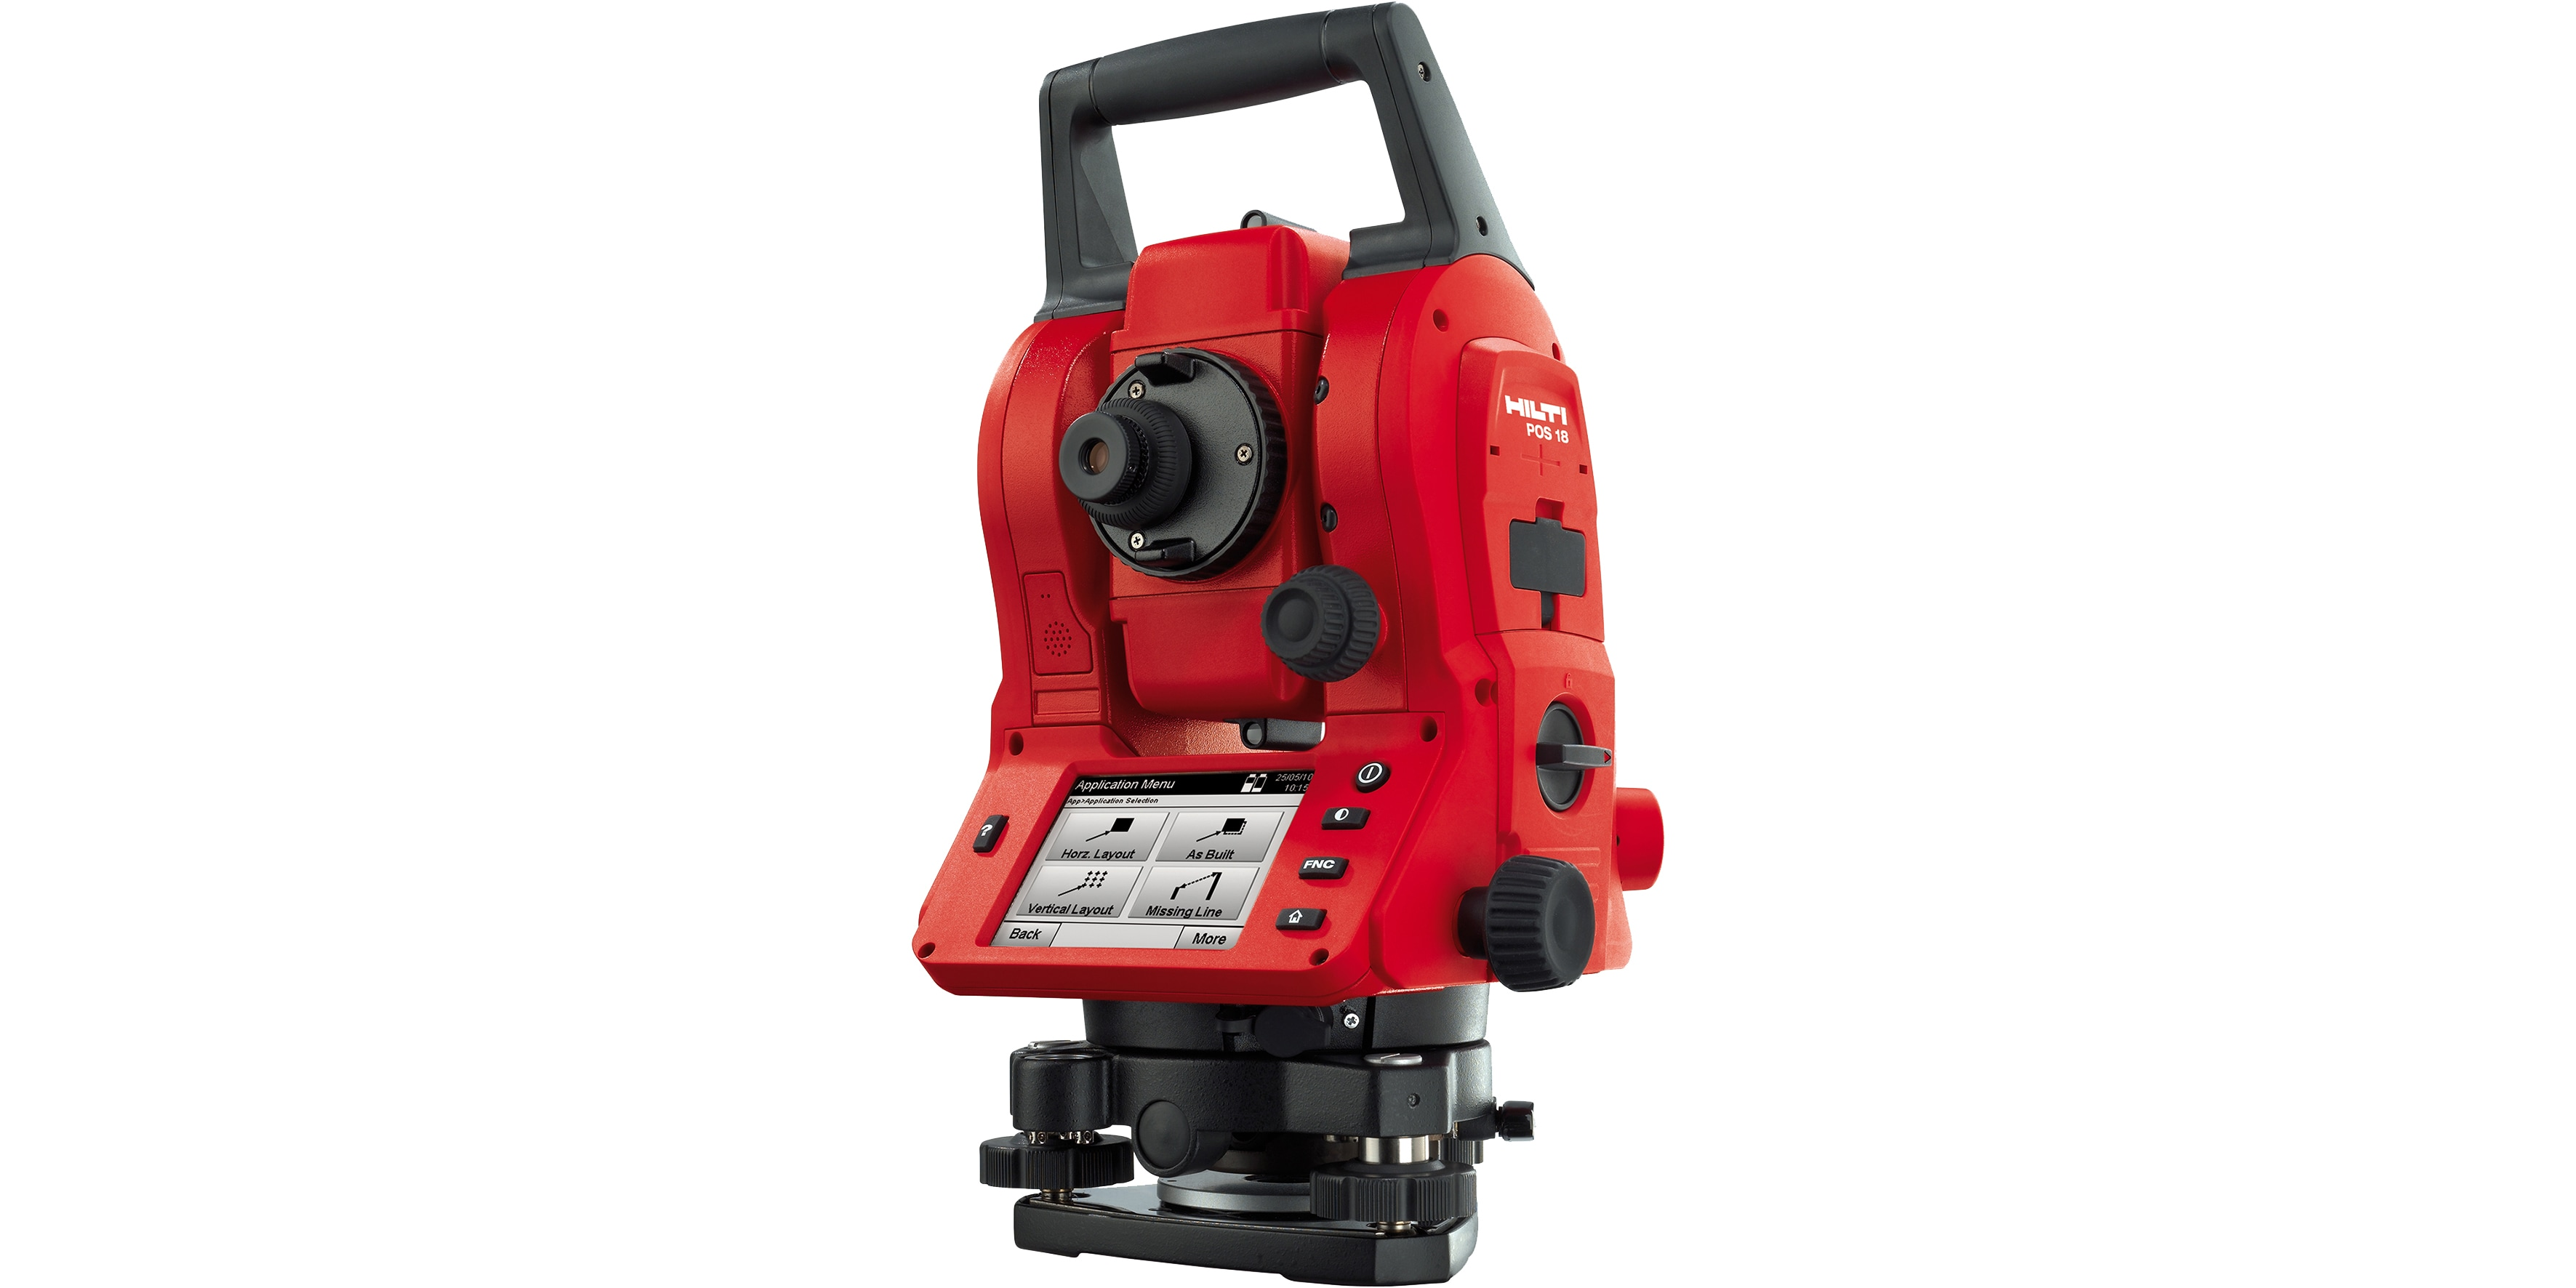 Hilti mechanical total station